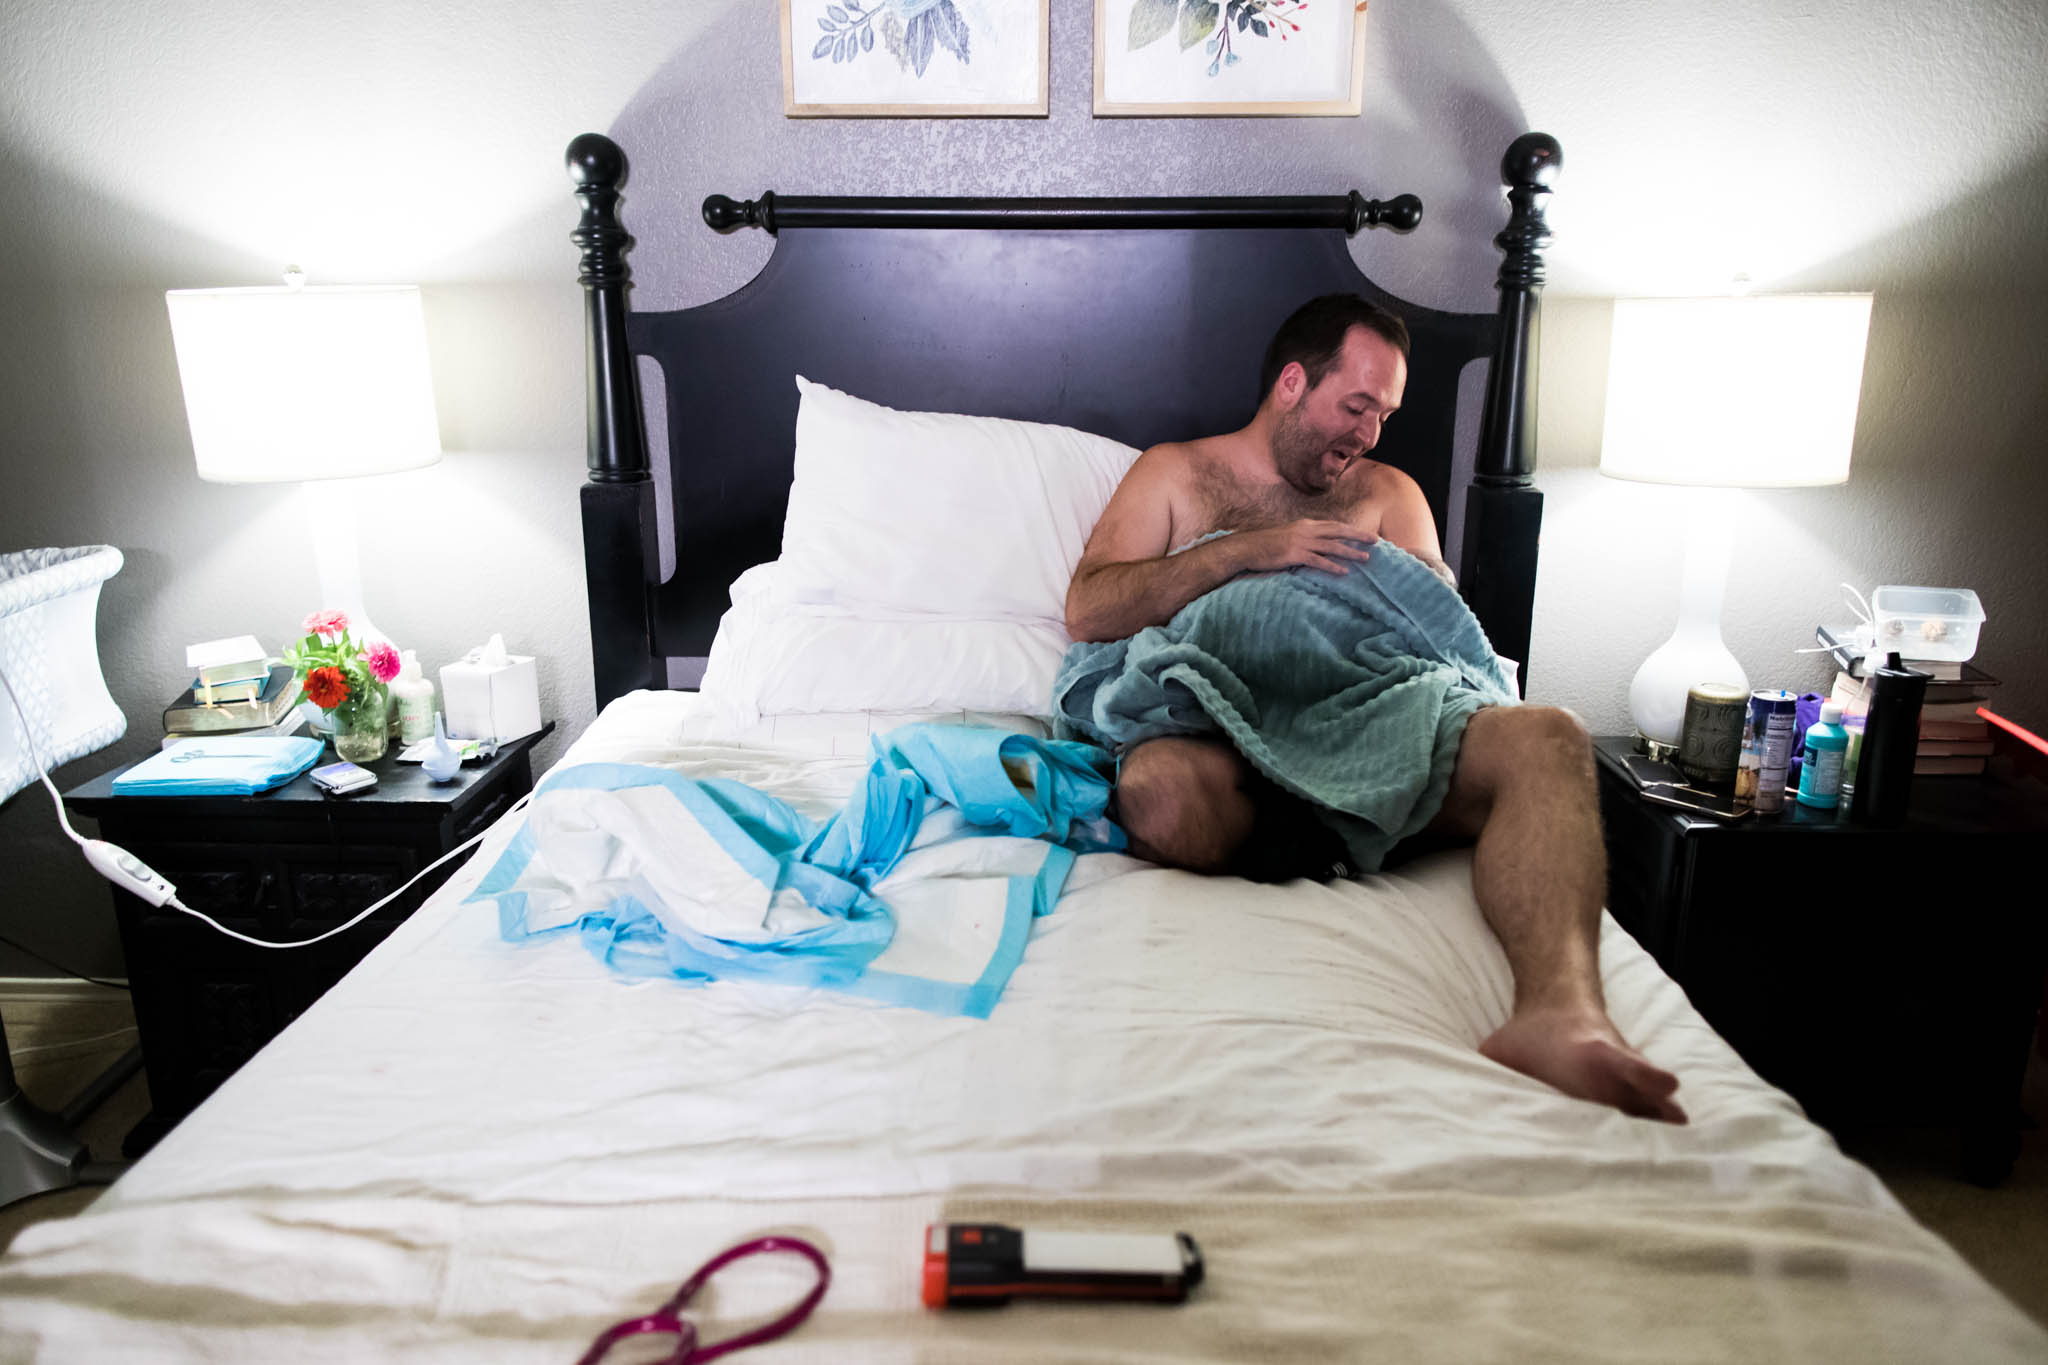 During a denton texas home birth, photographer Lawren Rose Photography captures an image at a distance of a new Dad sitting on his bed gazing at his new son